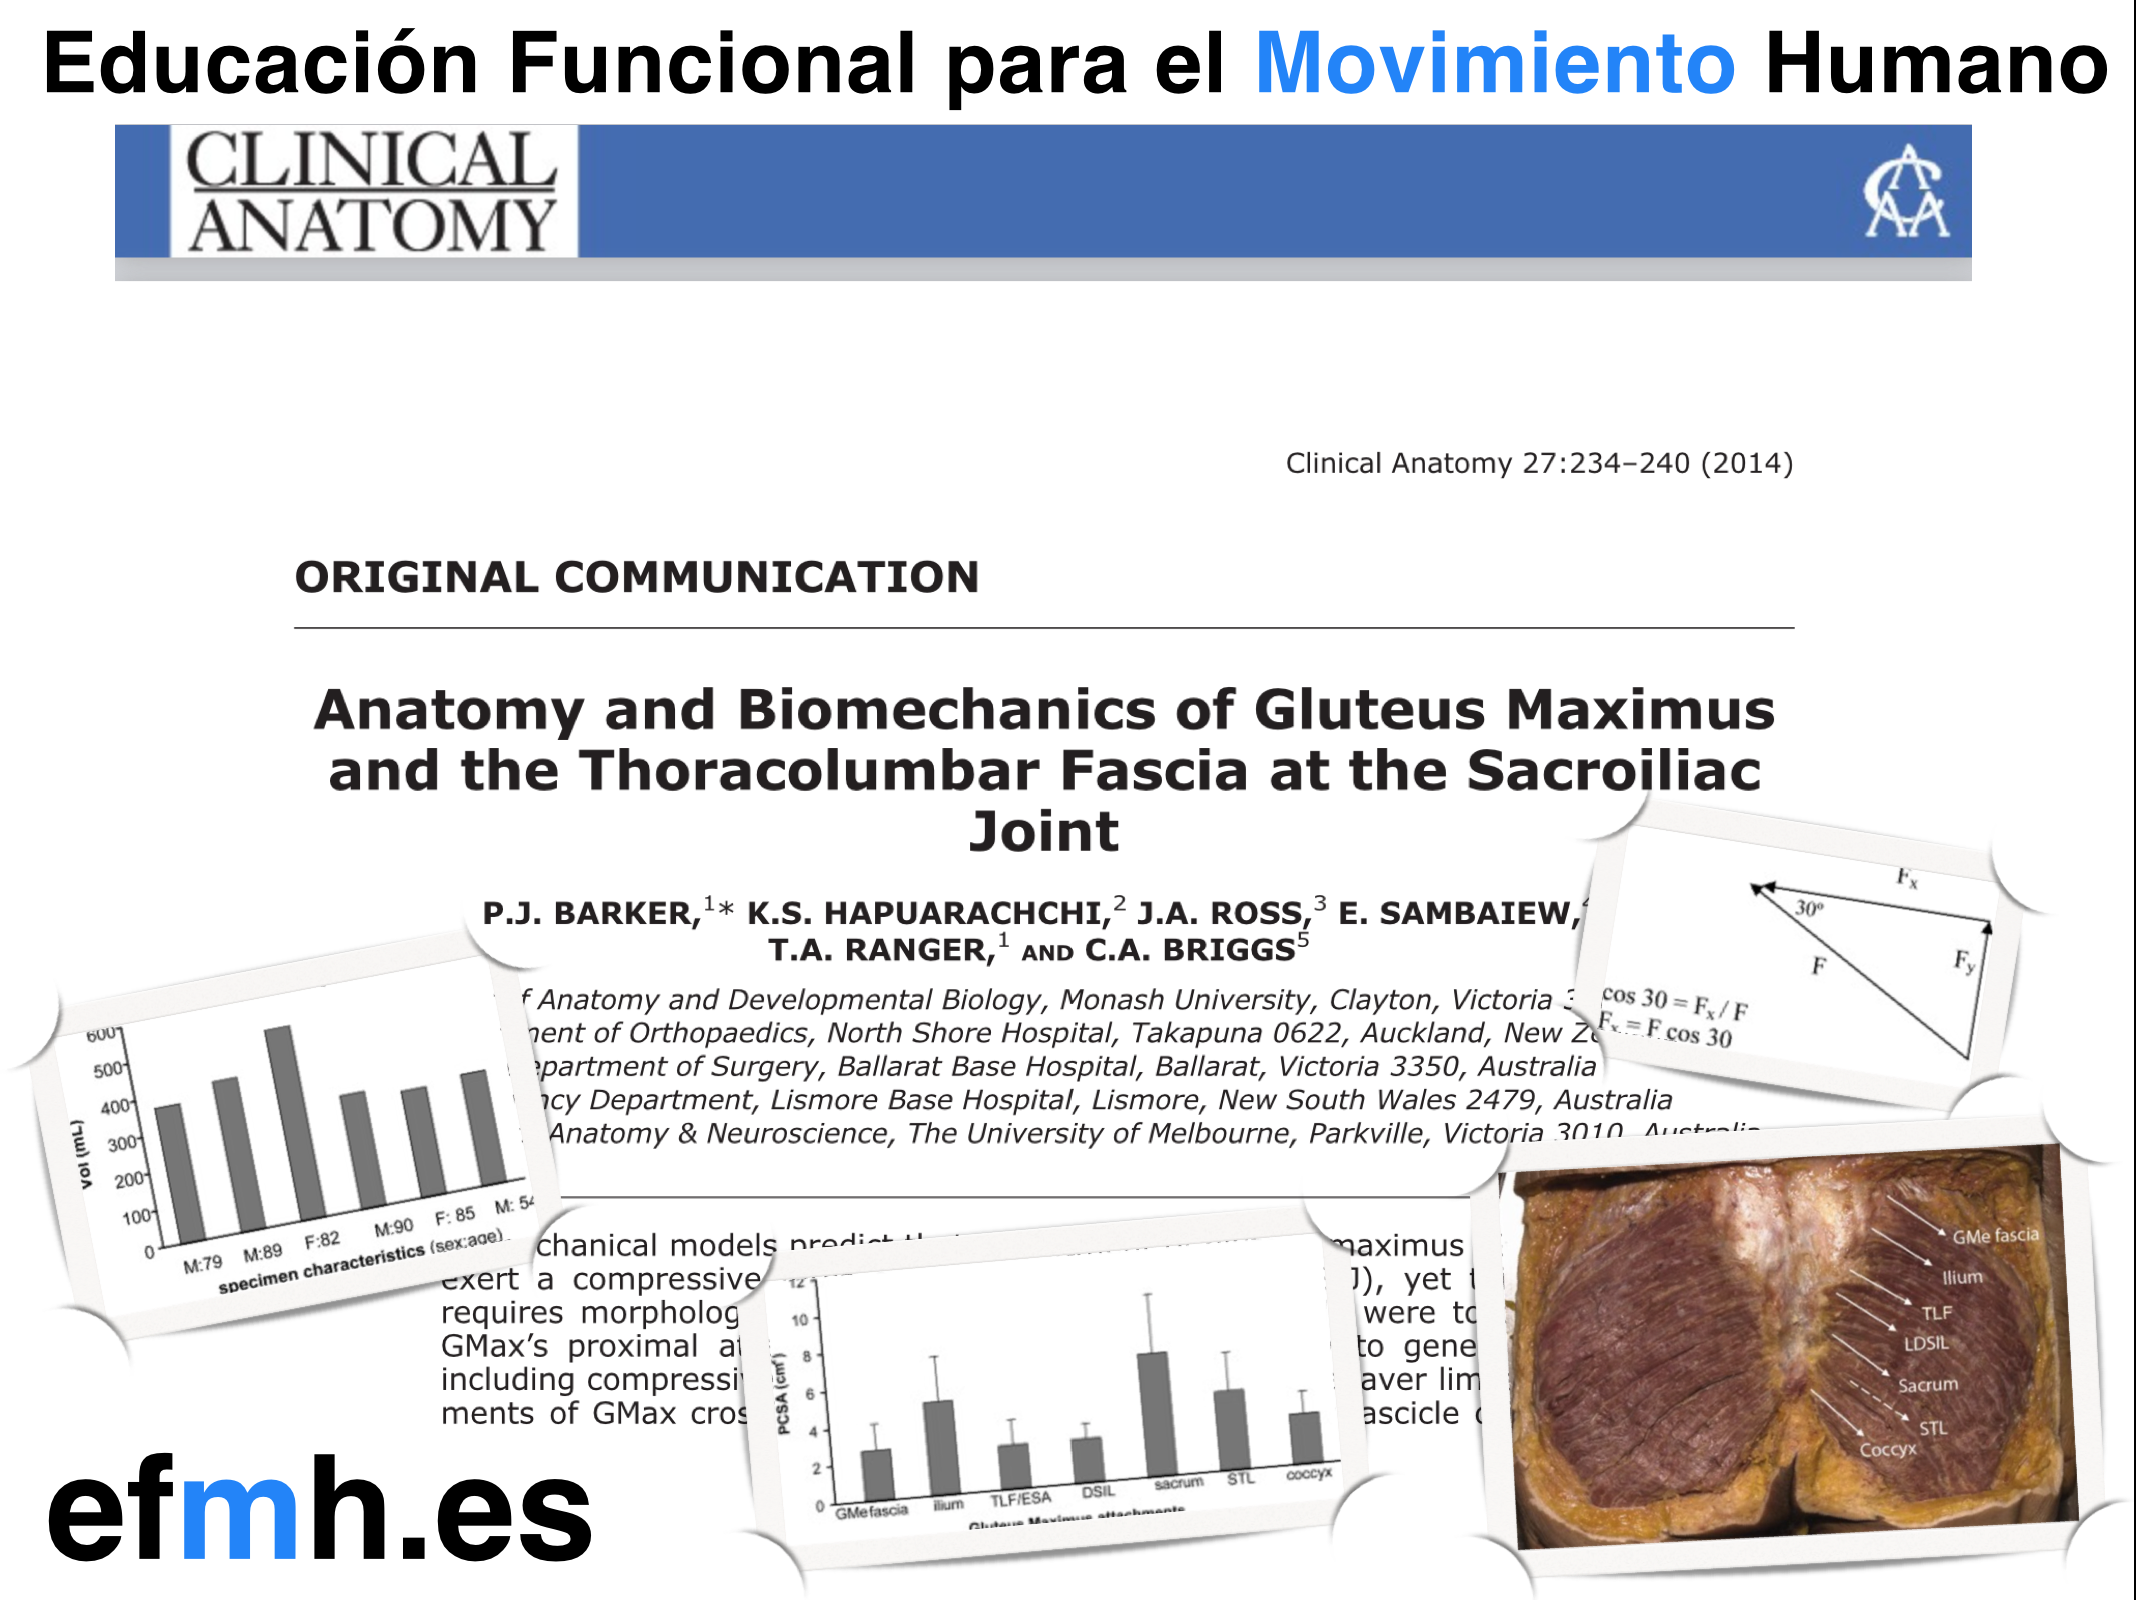 Anatomy and biomechanics of gluteus maximus and the thoracolumbar fascia at the sacroiliac joint. Barker